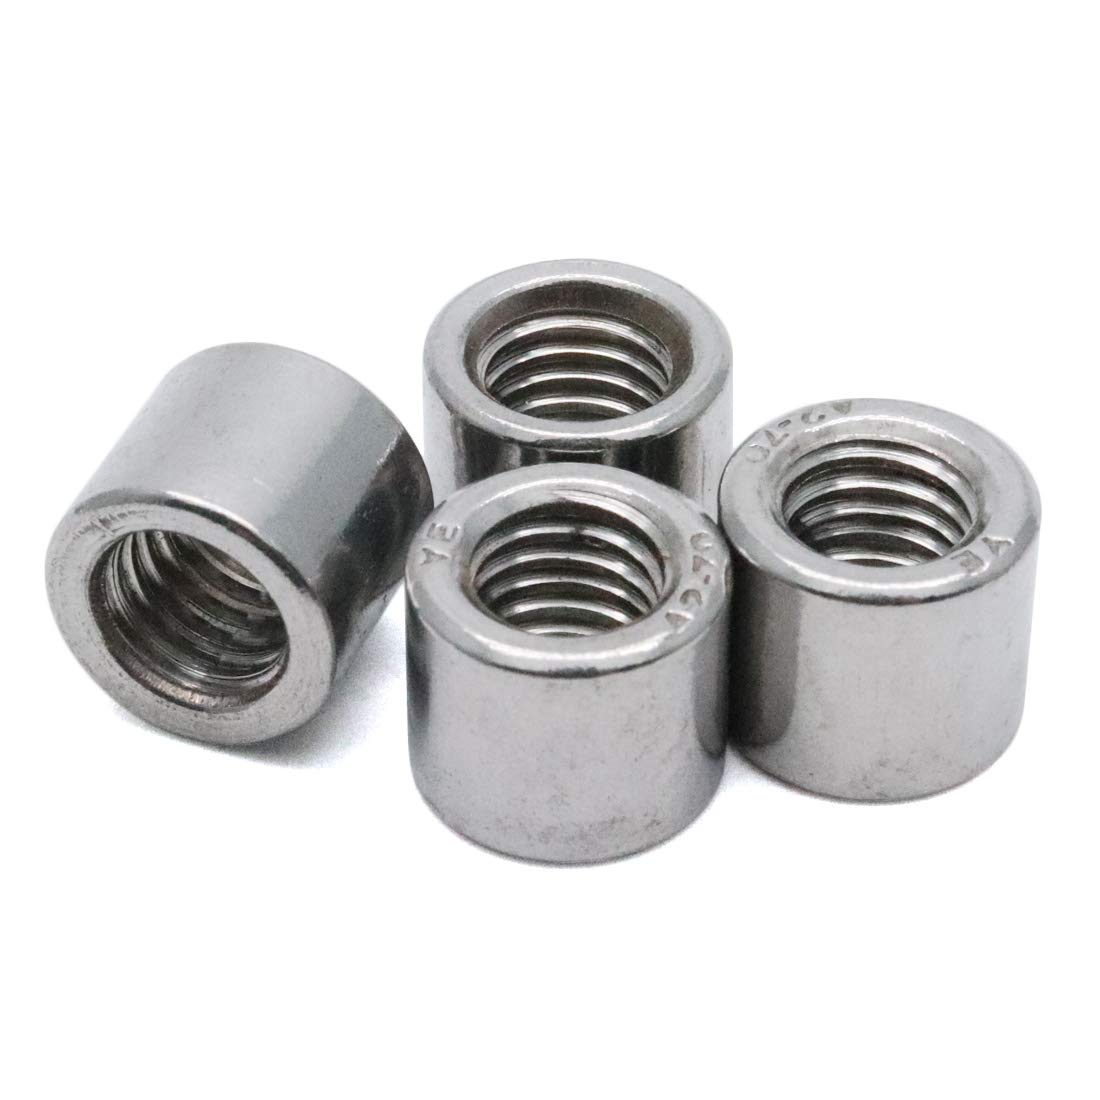 Yootop M8 Thread Round Coupling Nut Sleeve Stud Nut 30mm Height 5-Pack